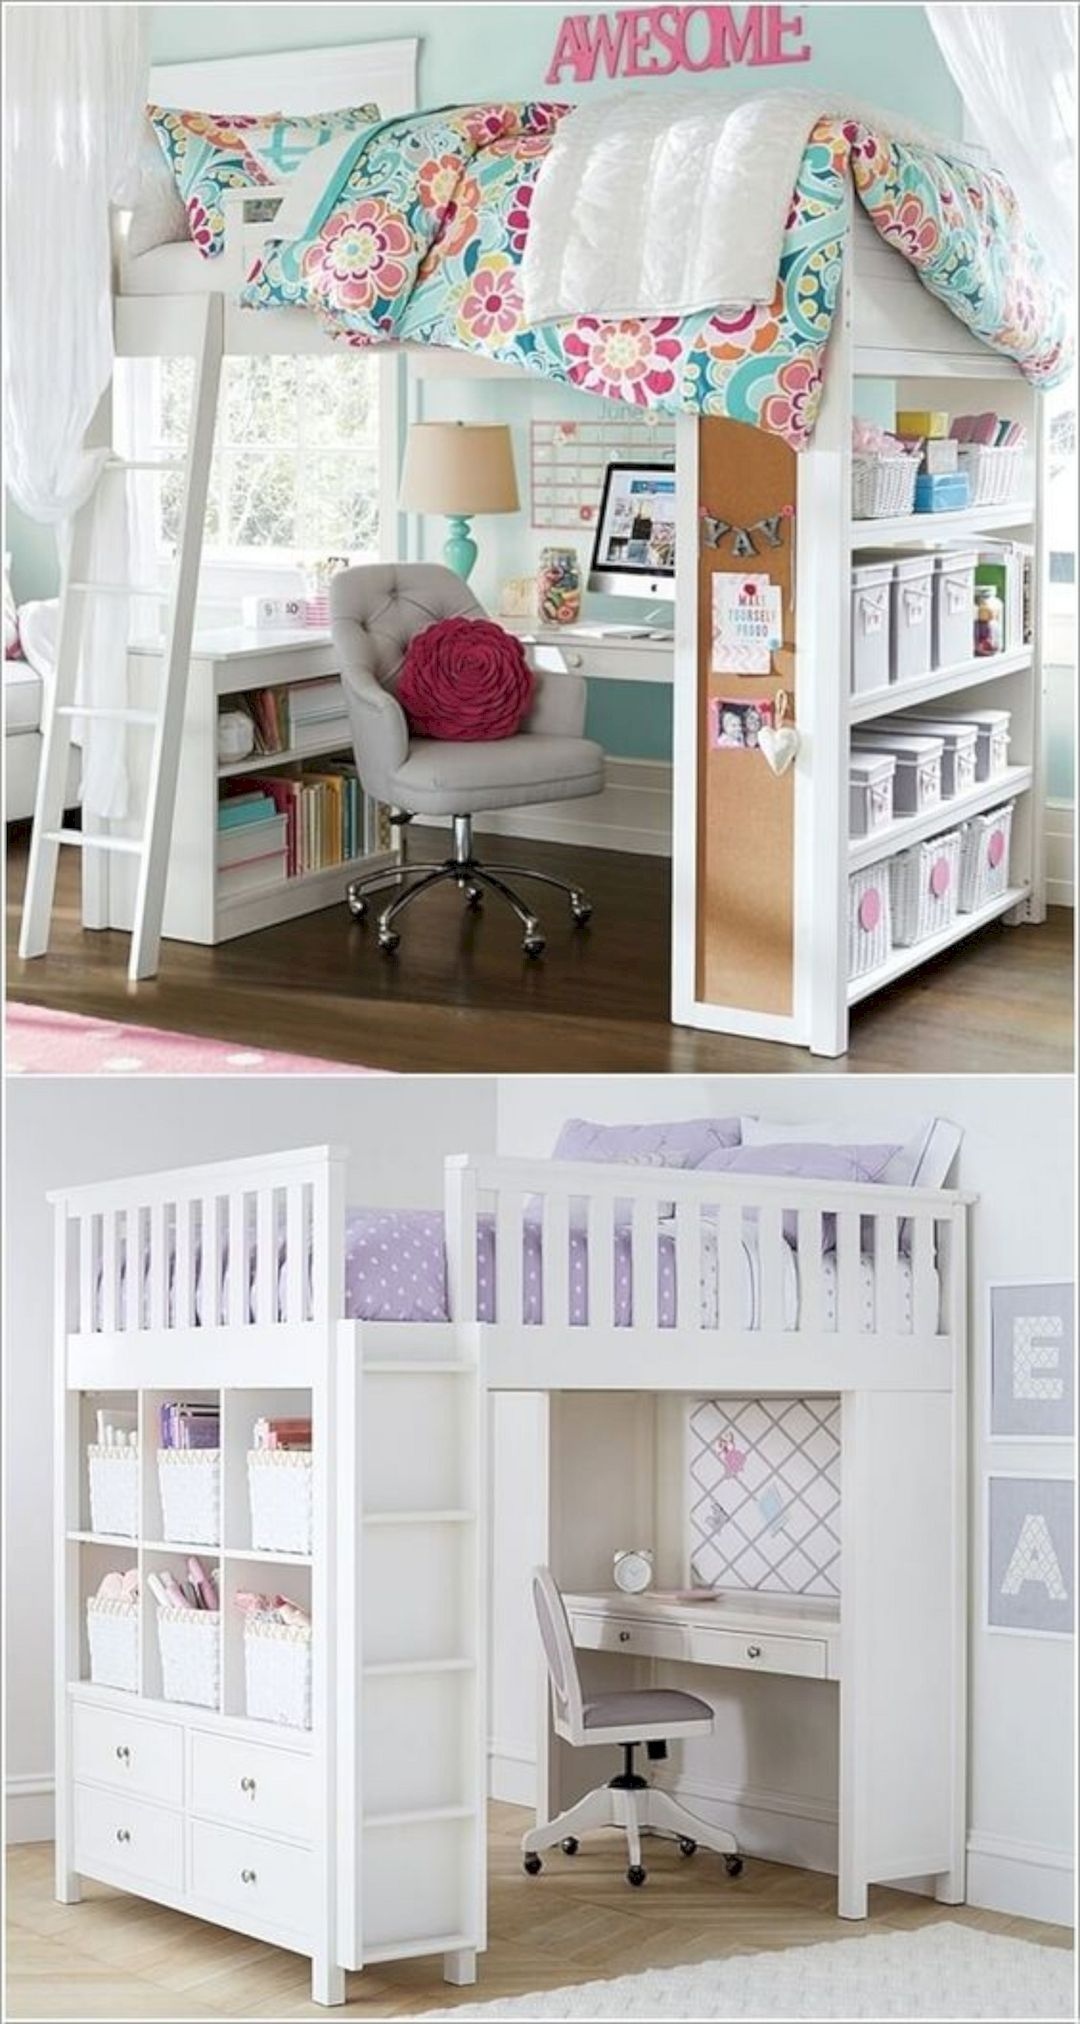 18 Diy Room Decor Ideas For Crafters: 18 DIY Space-Saving Furniture Ideas